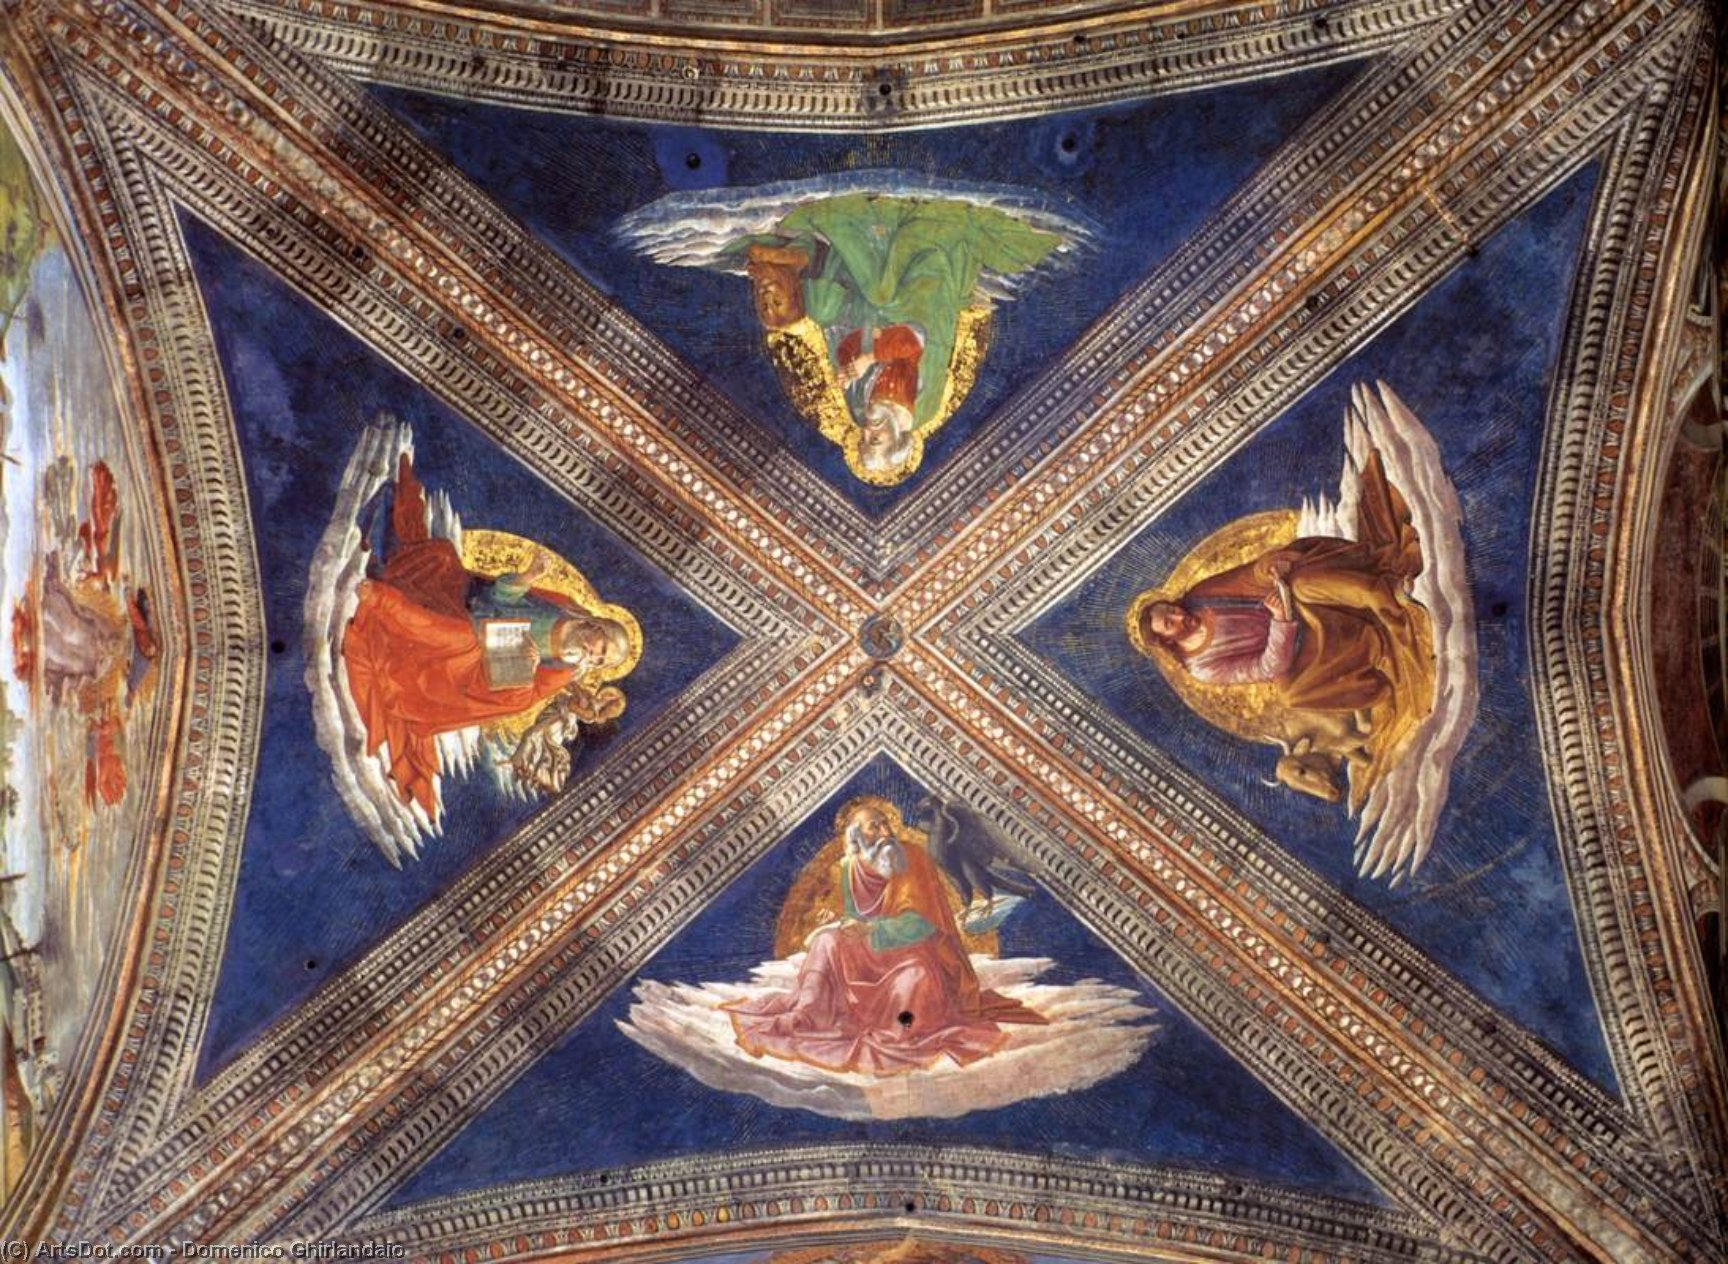 Vaulting of the Tornabuoni Chapel, Frescoes by Domenico Ghirlandaio (1449-1494, Italy)